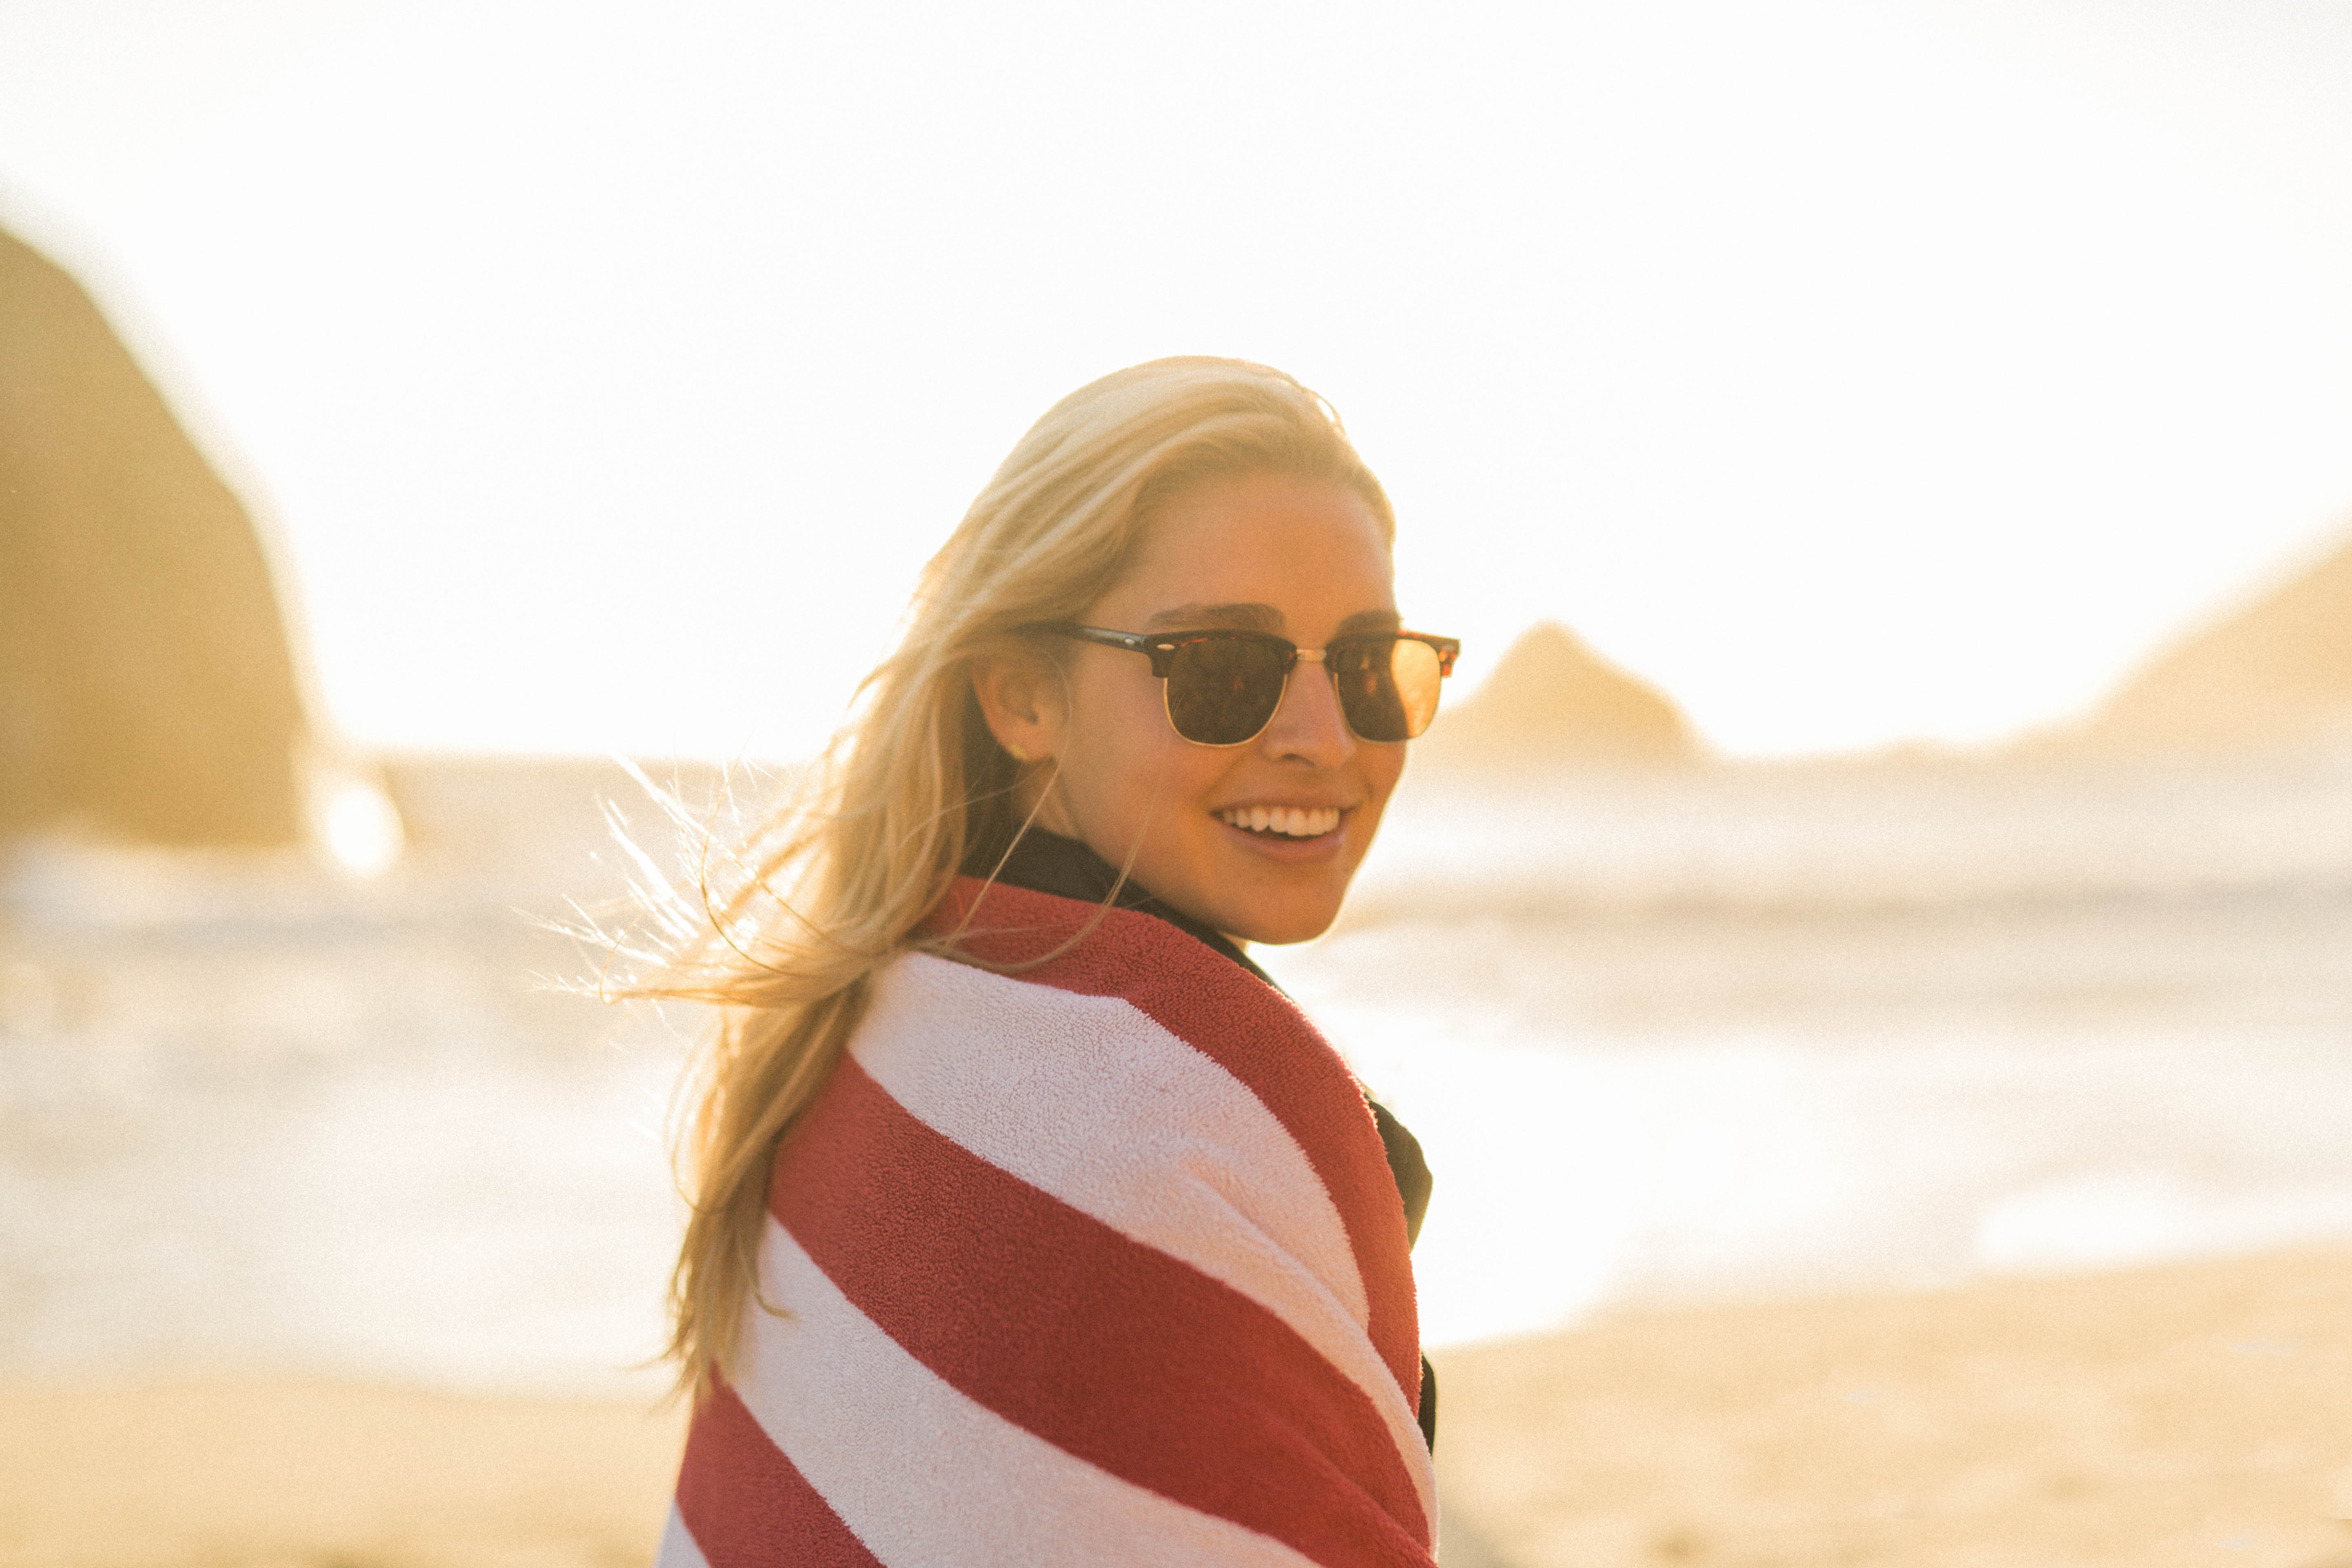 woman wearing black sunglasses with red and white striped blanket cover standing near seashore during daytime